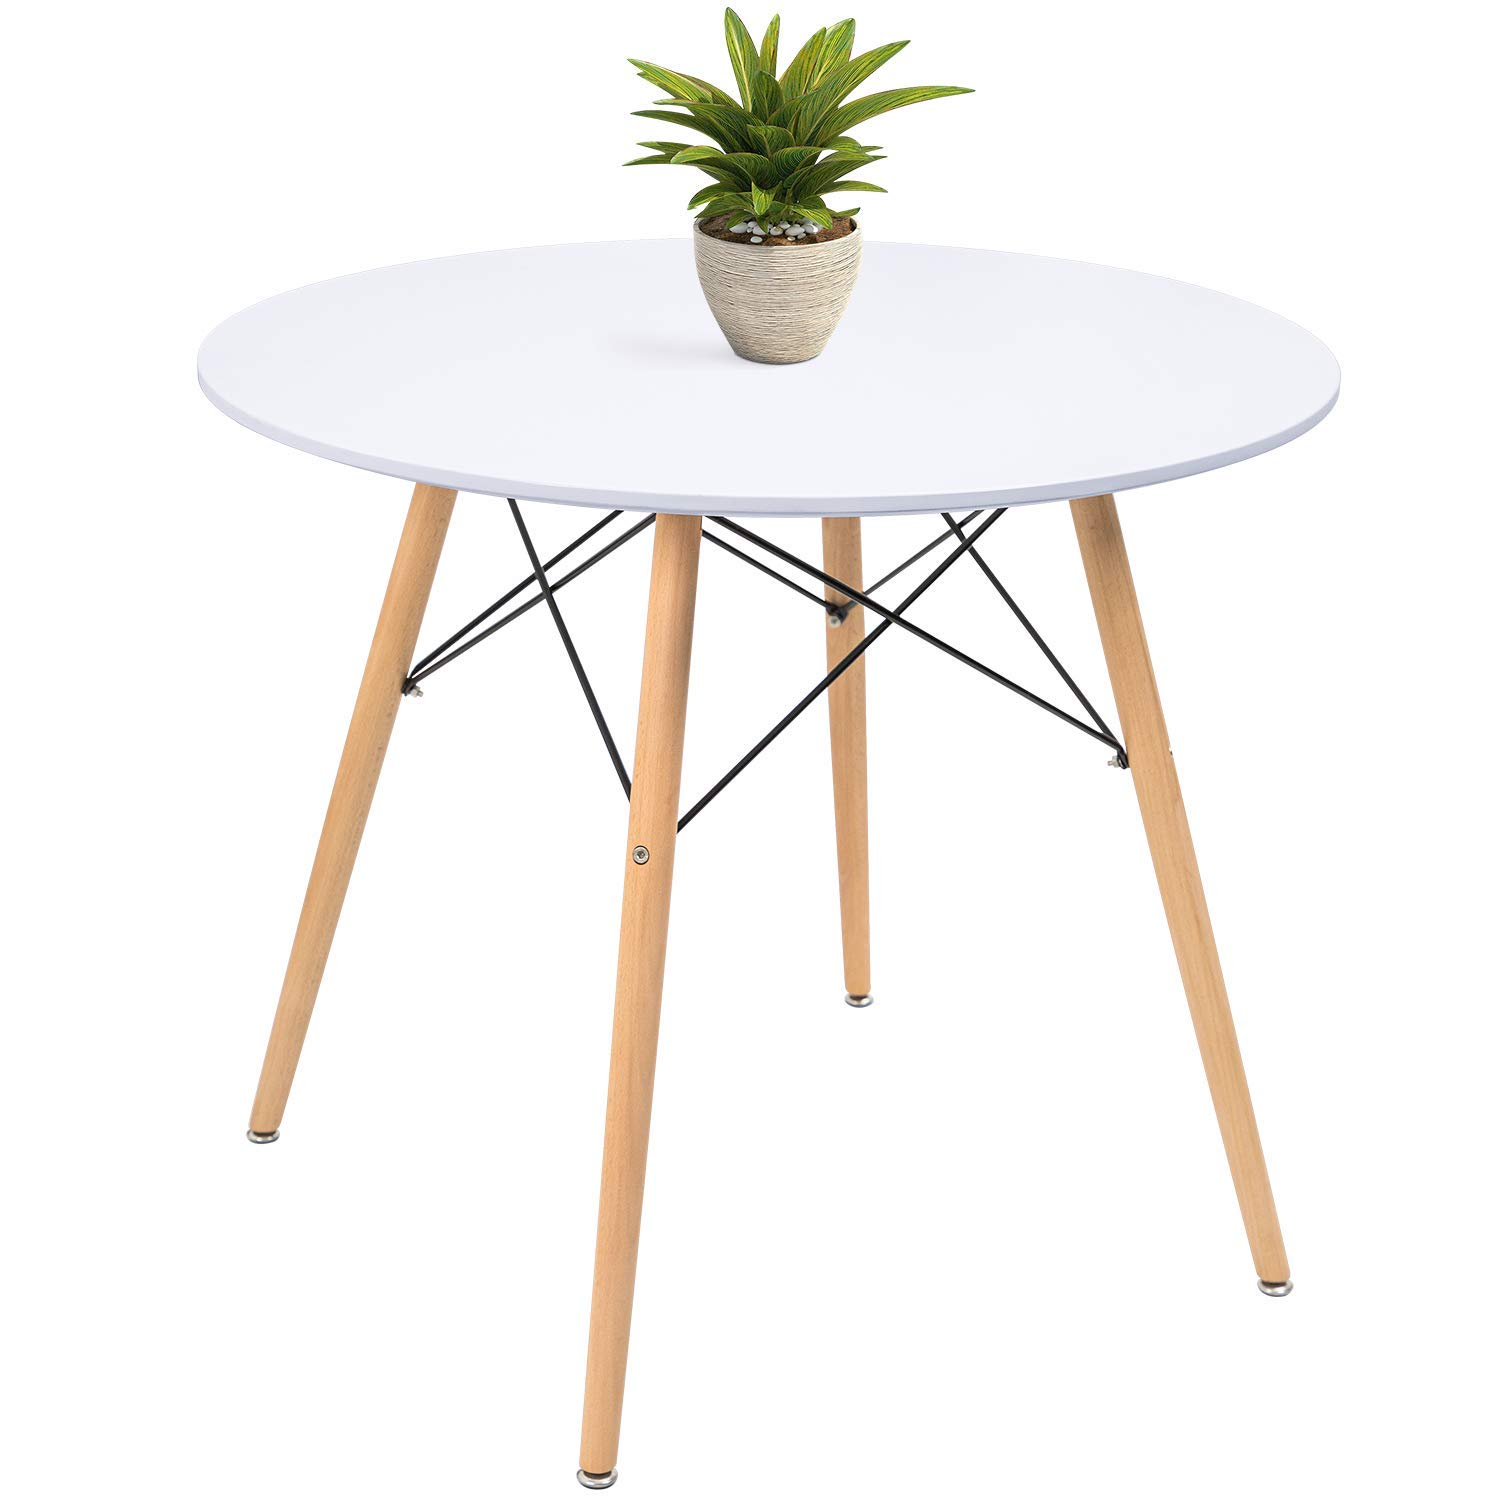 KaiMeng White Kitchen Dining Table Round Modern Coffee Table Leisure Style Tea Table Office Conference Pedestal Desk